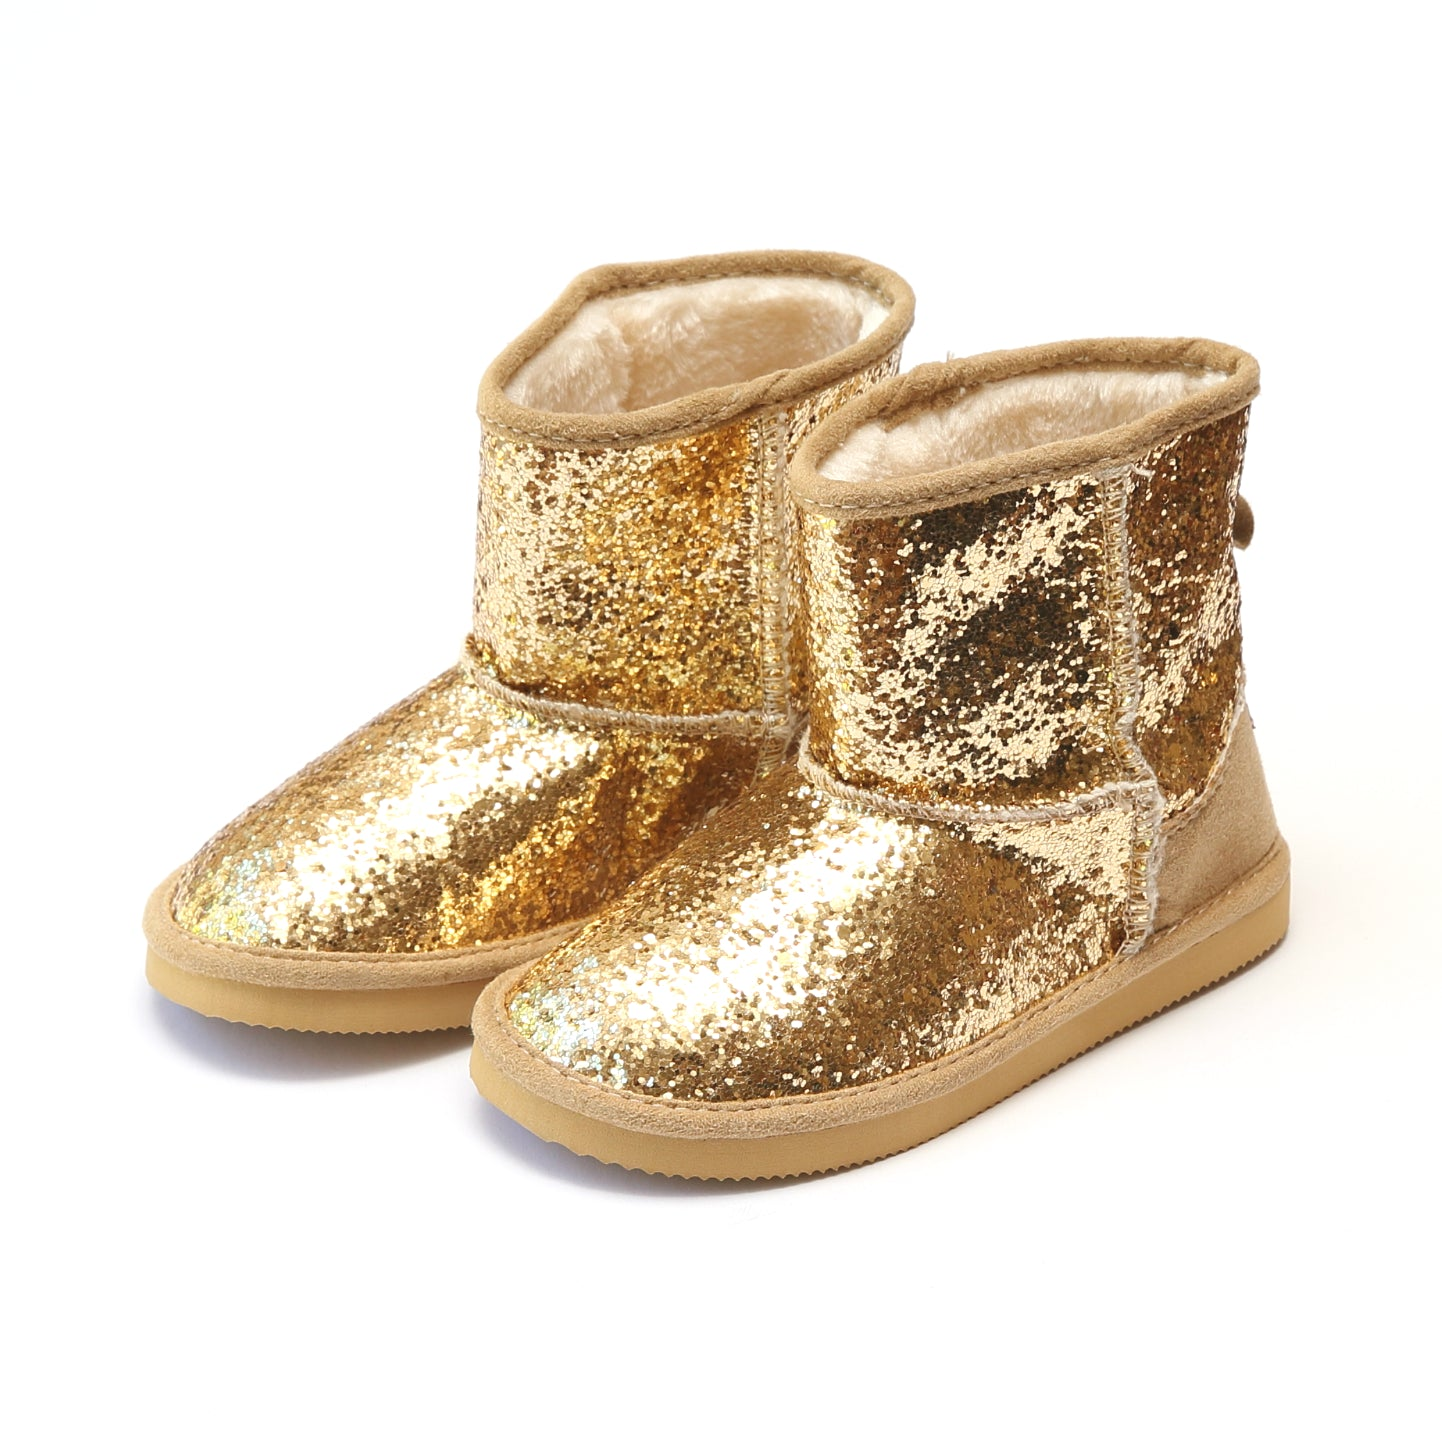 Sparkly Glitter Boot – L'Amour Shoes